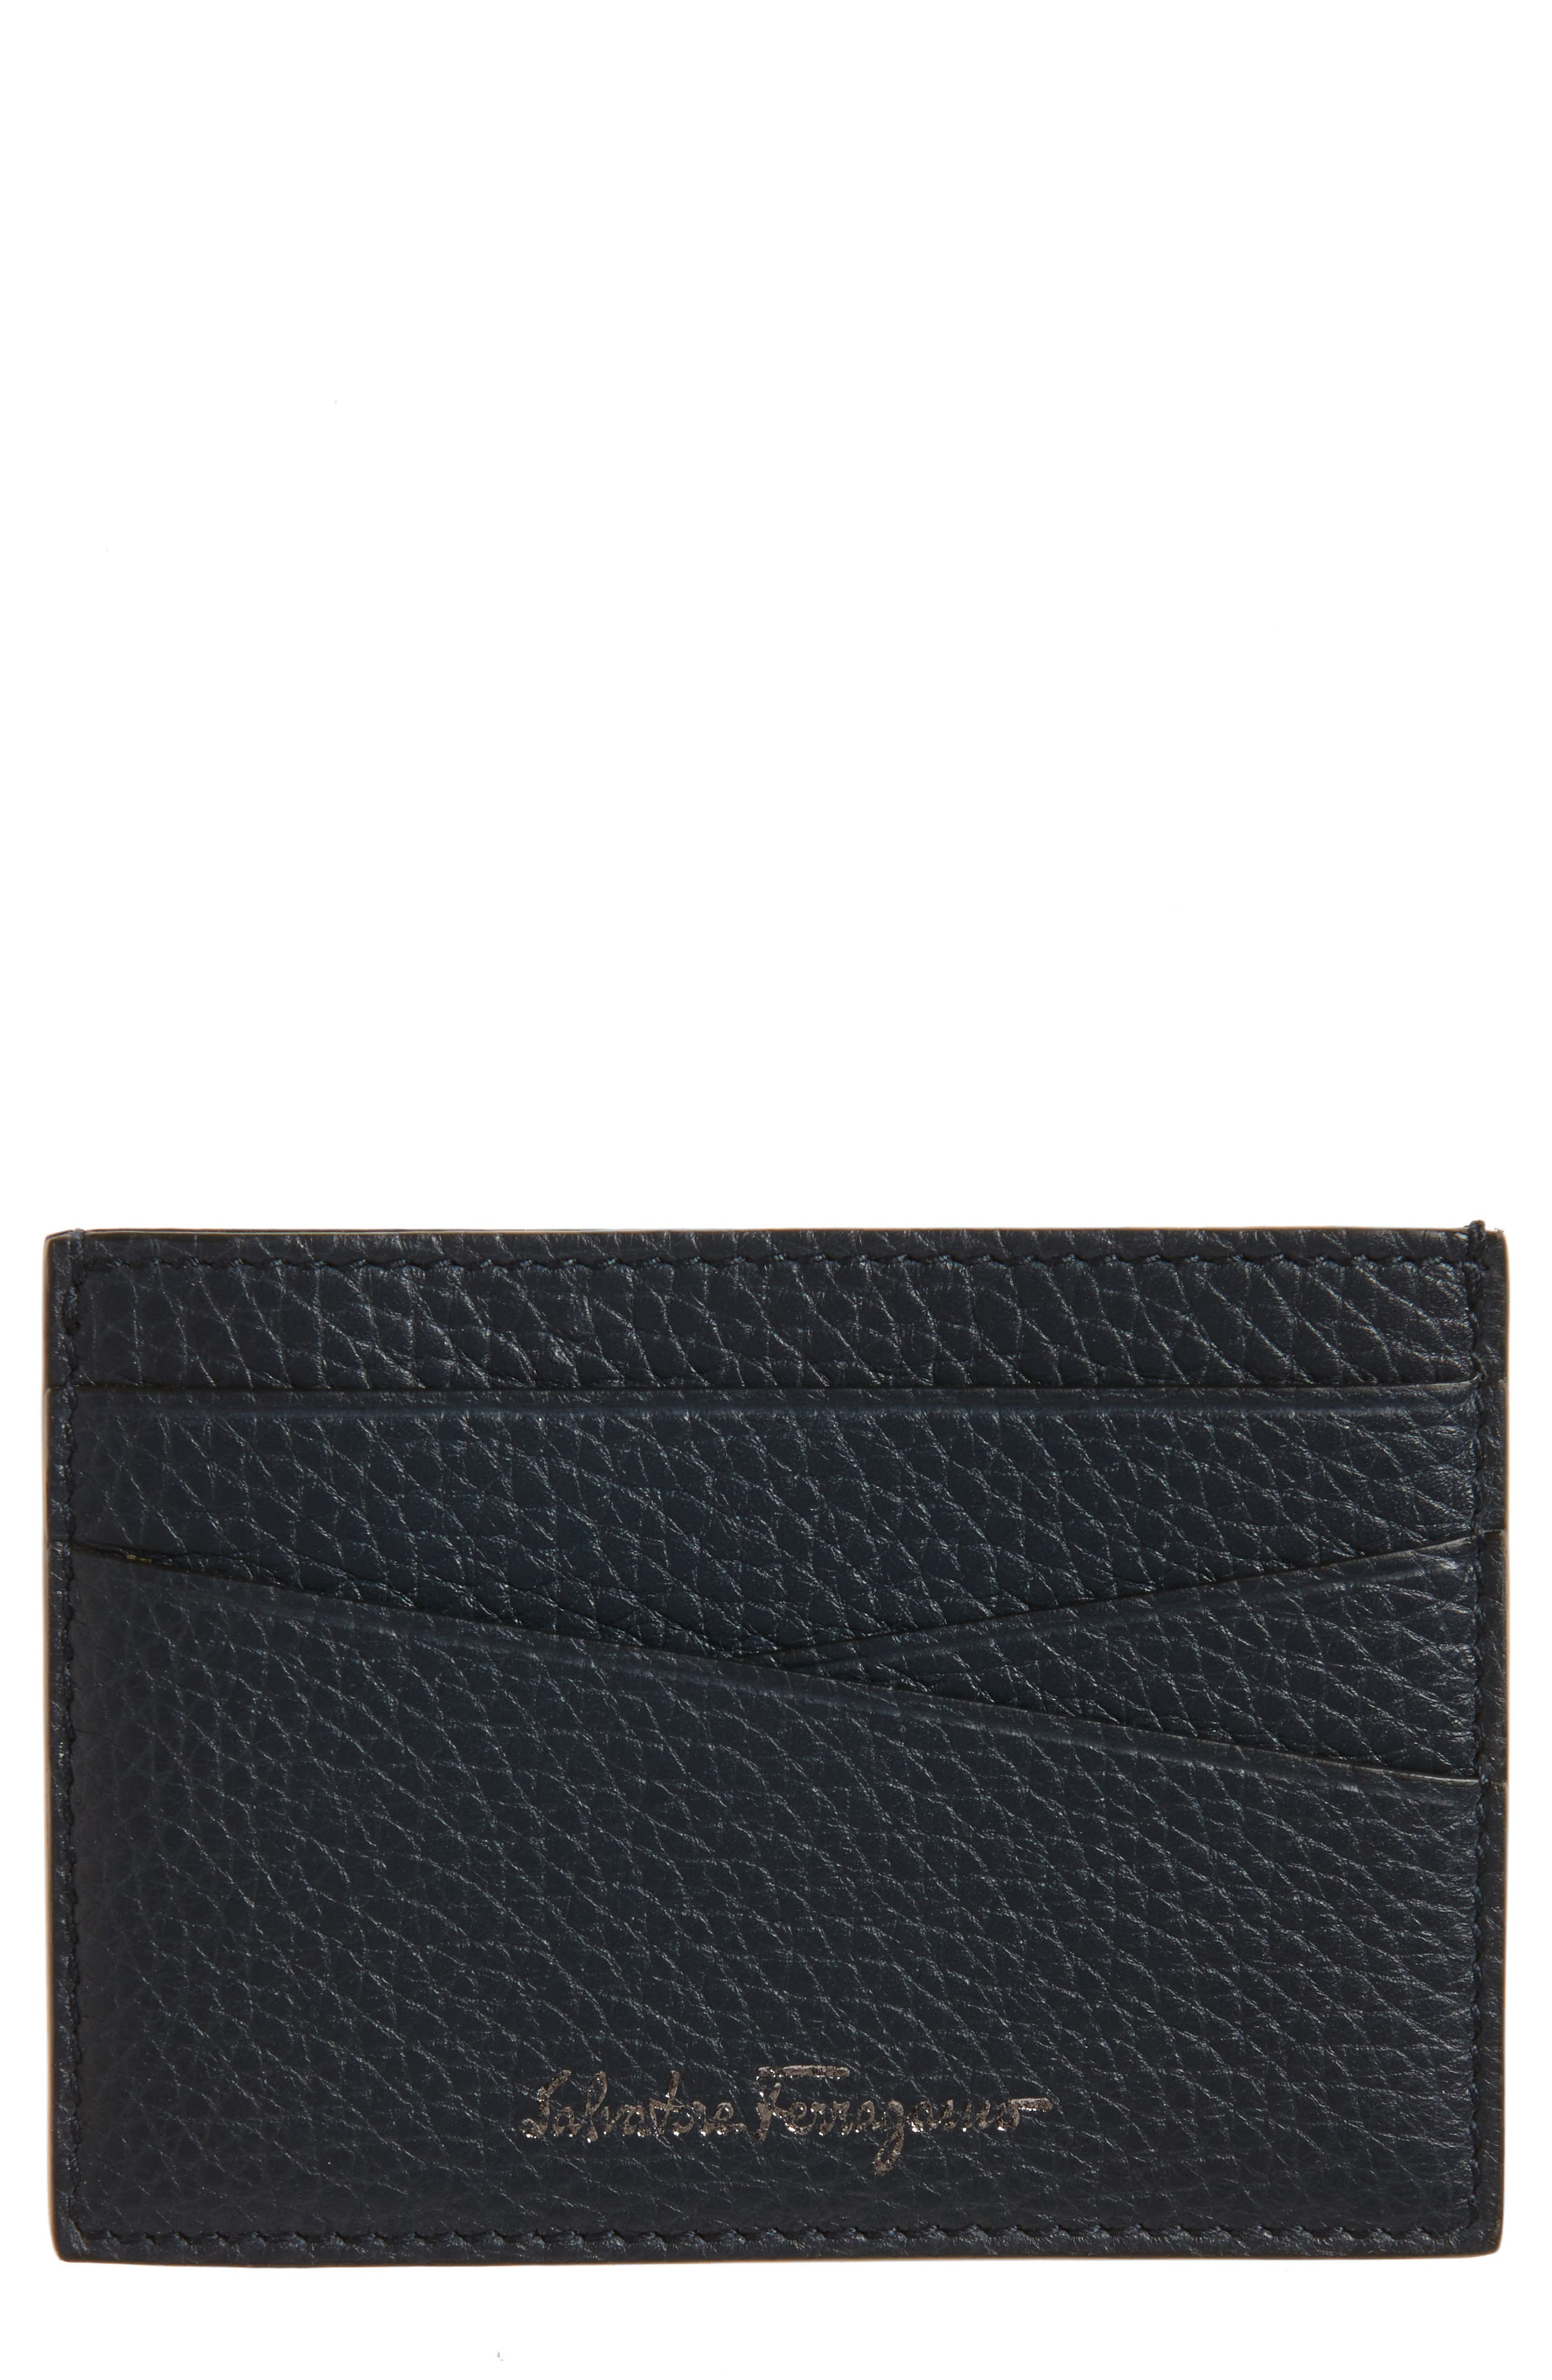 Salvatore Ferragamo Firenze Leather Card Case